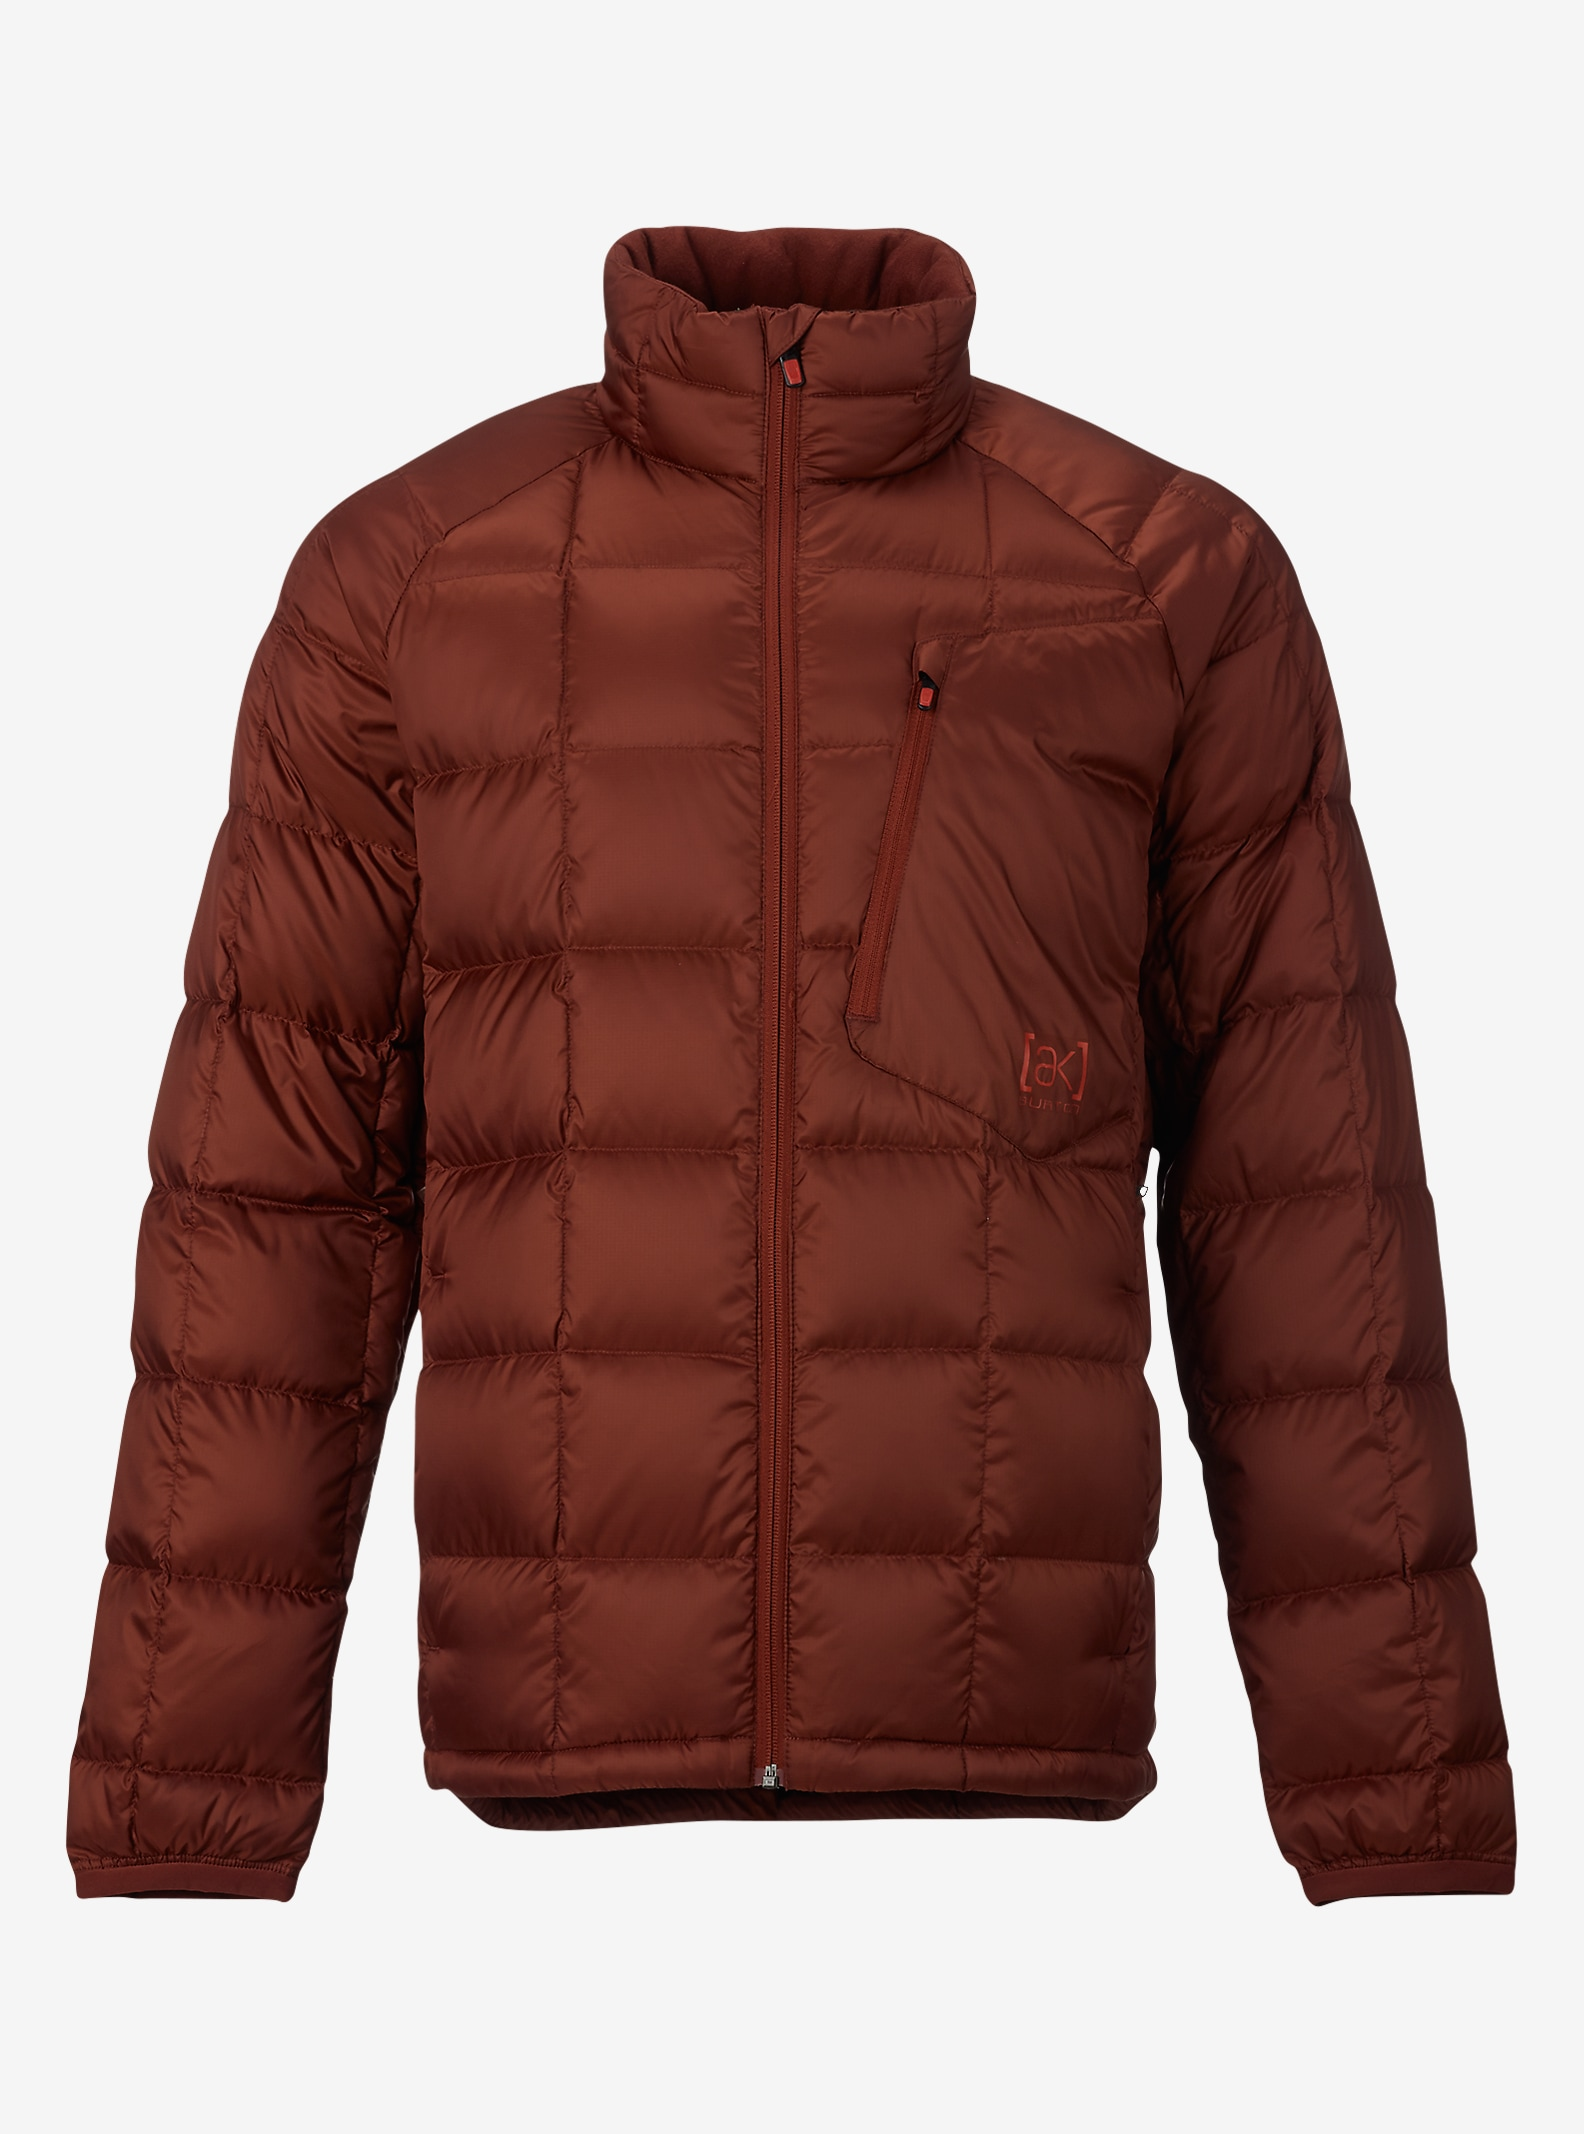 Burton [ak] BK Down Insulator Jacket shown in Matador